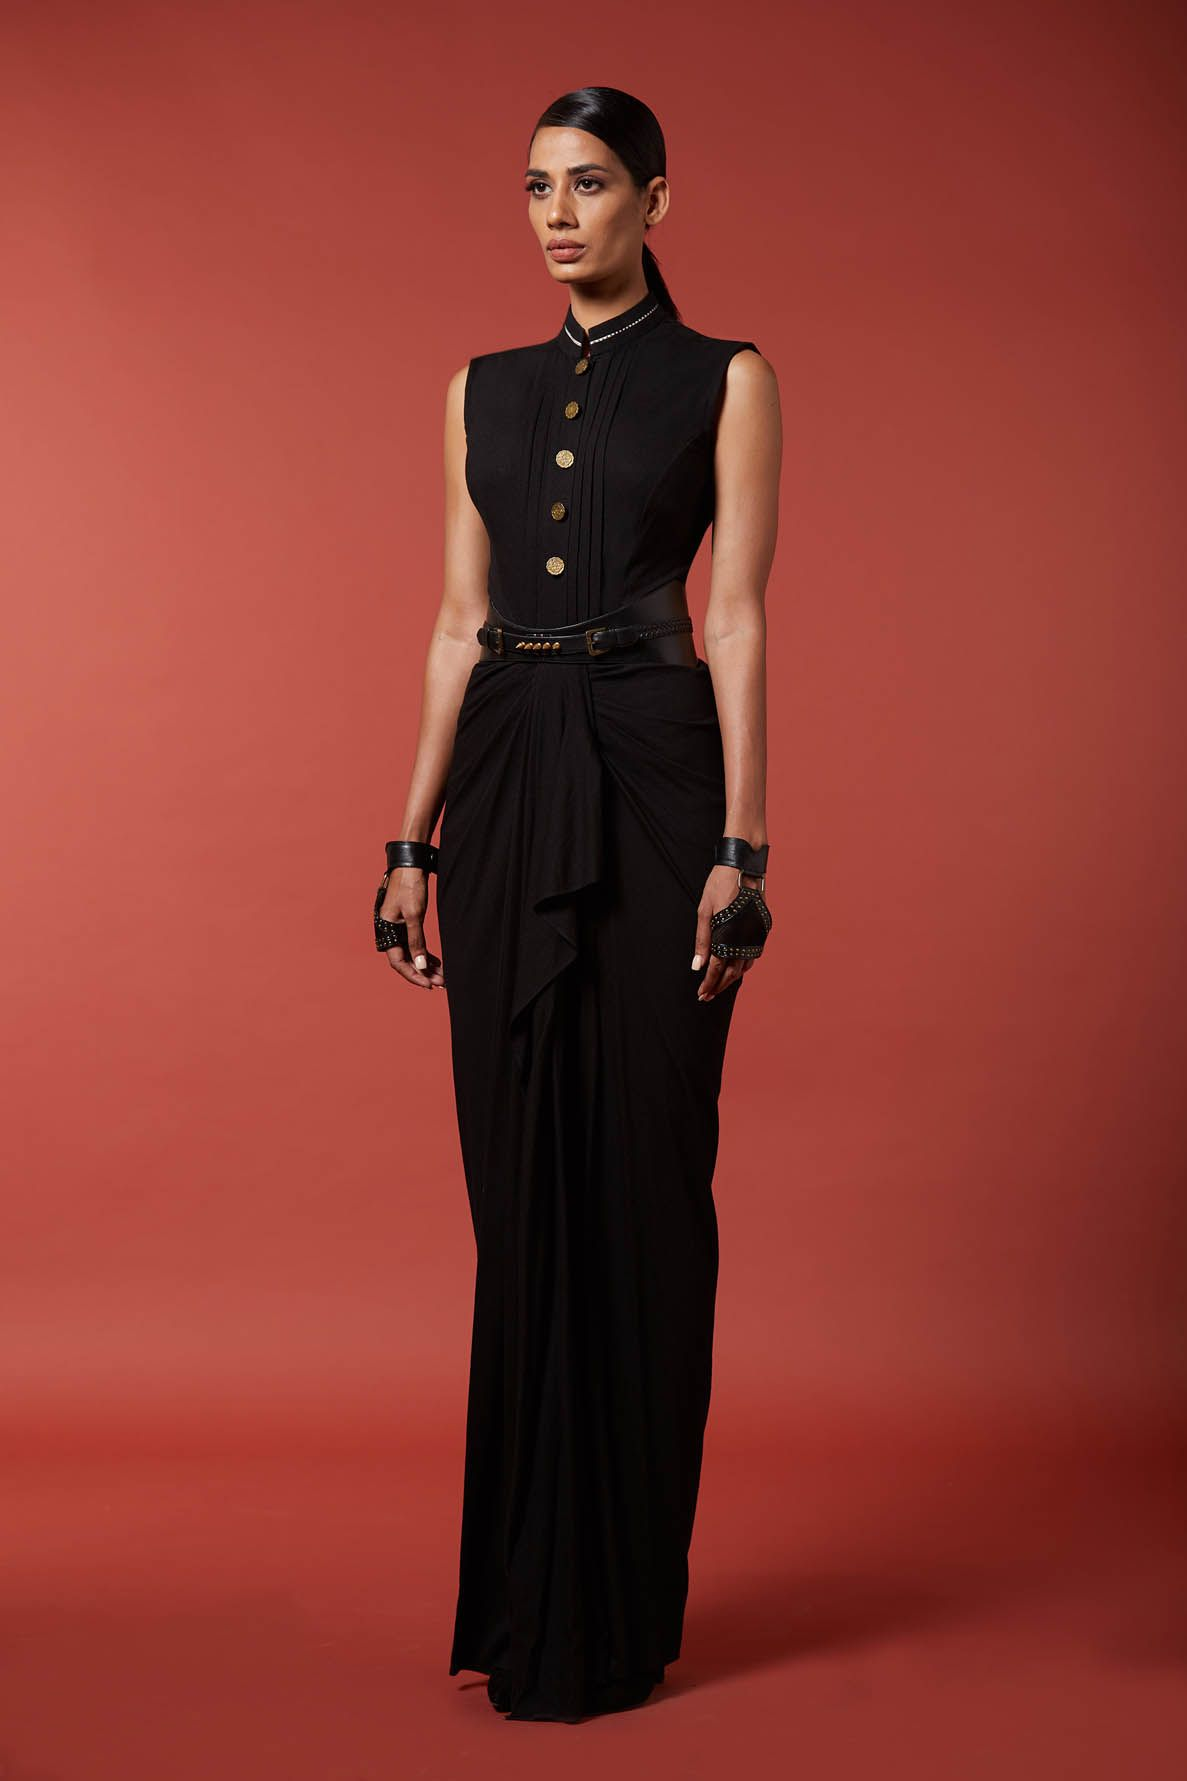 Corporal Drape Black Saree Gown By S N By Shantanu And Nikhil Available At Ogaan Online Shop